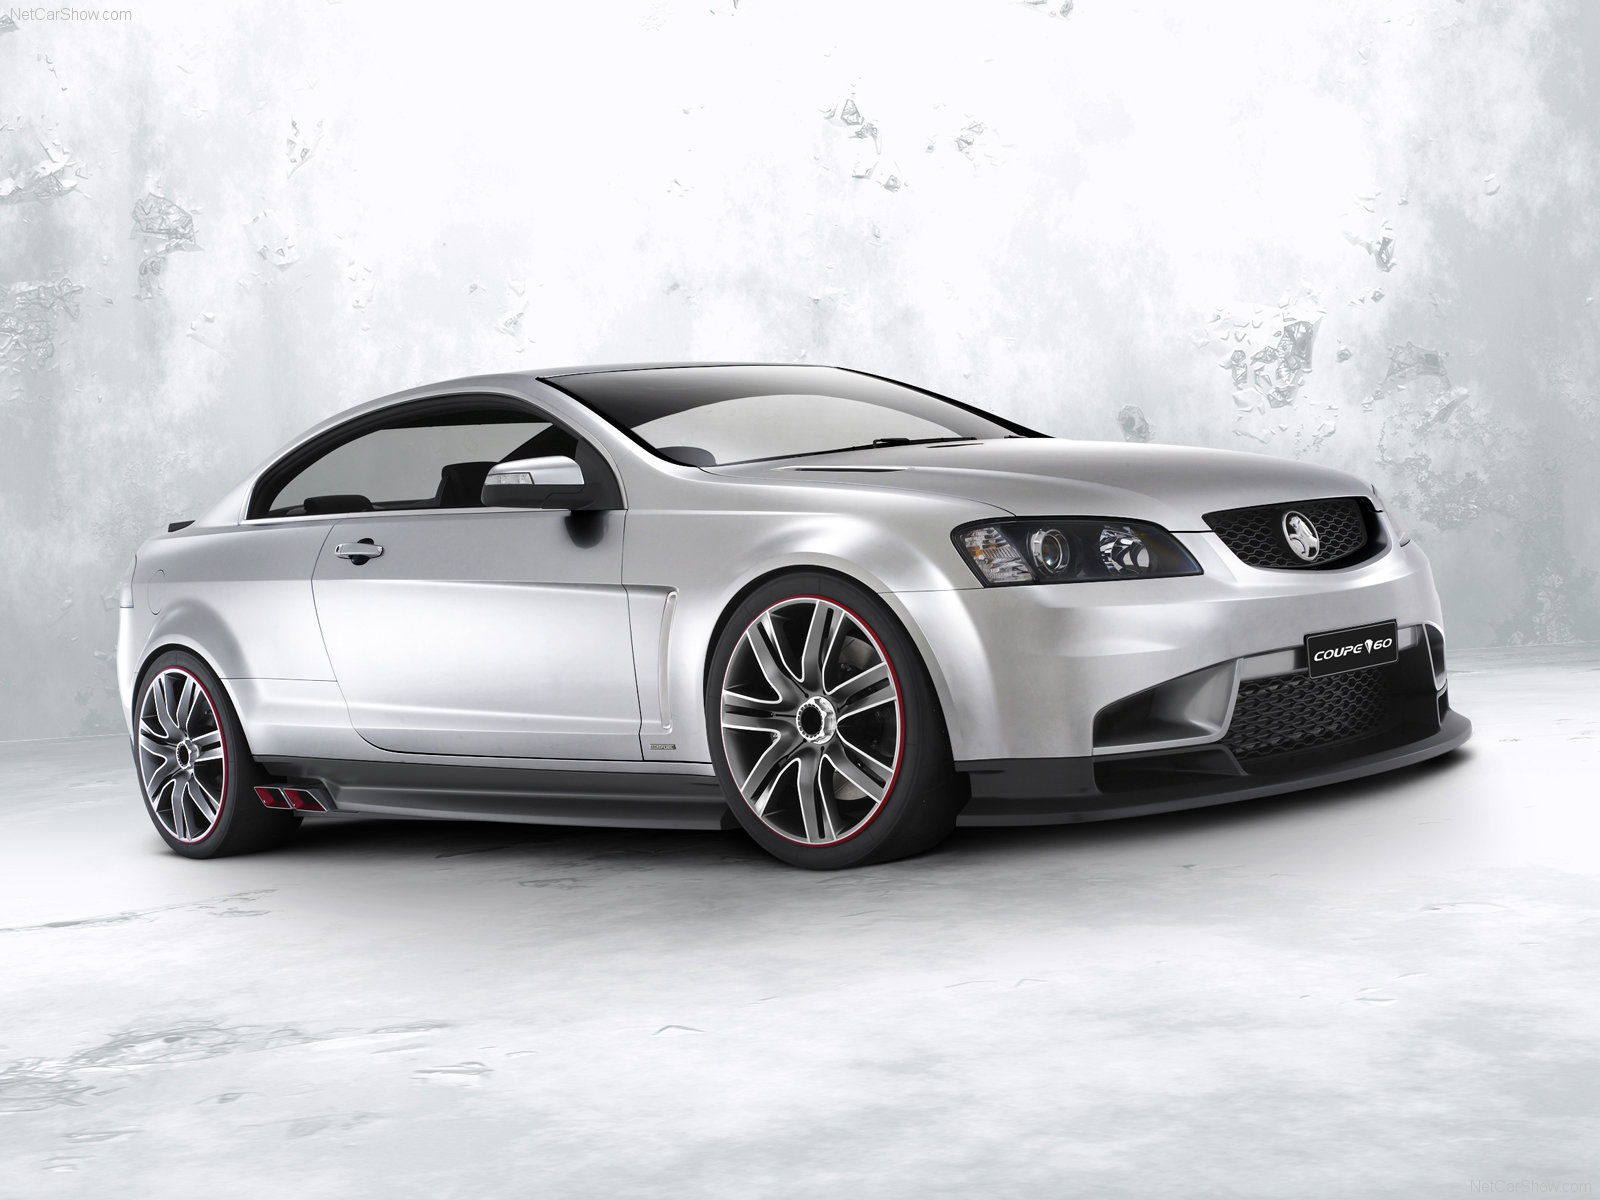 Holden Coupe 60 photo 52831